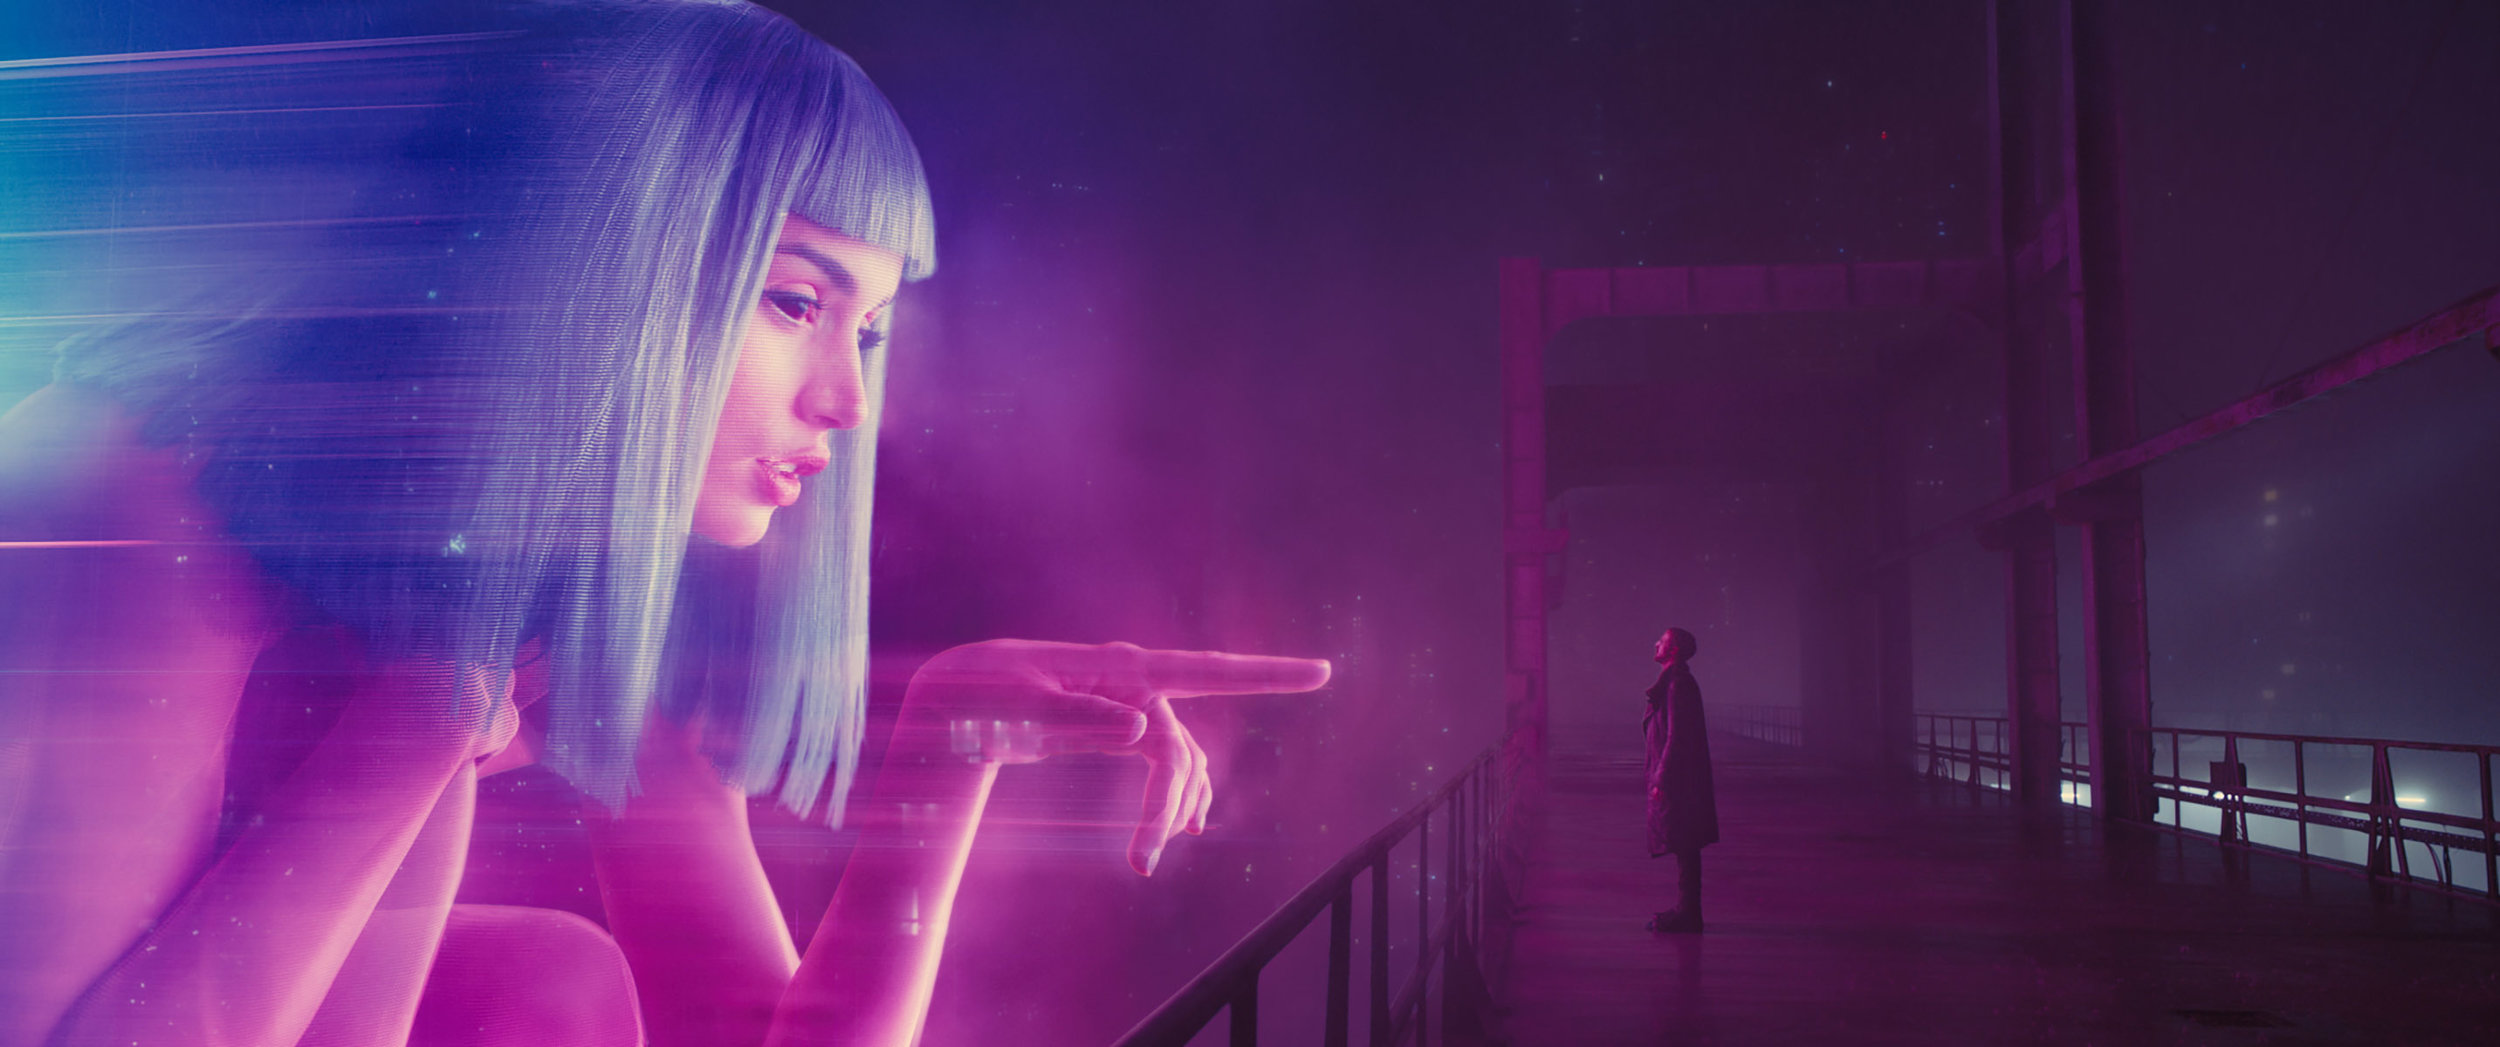 Blade Runner 2049 - Amanda welcomes a trio of Columbus improvisers, Erik, Sean and Stephen to discuss the sci-fi film Blade Runner 2049. Erik likes the expansion of the Blade Runner world, Sean prefers the intimacy of the original film, Stephen points out the continuation of the year of drowning, and Amanda really loves Denis Villeneuve.